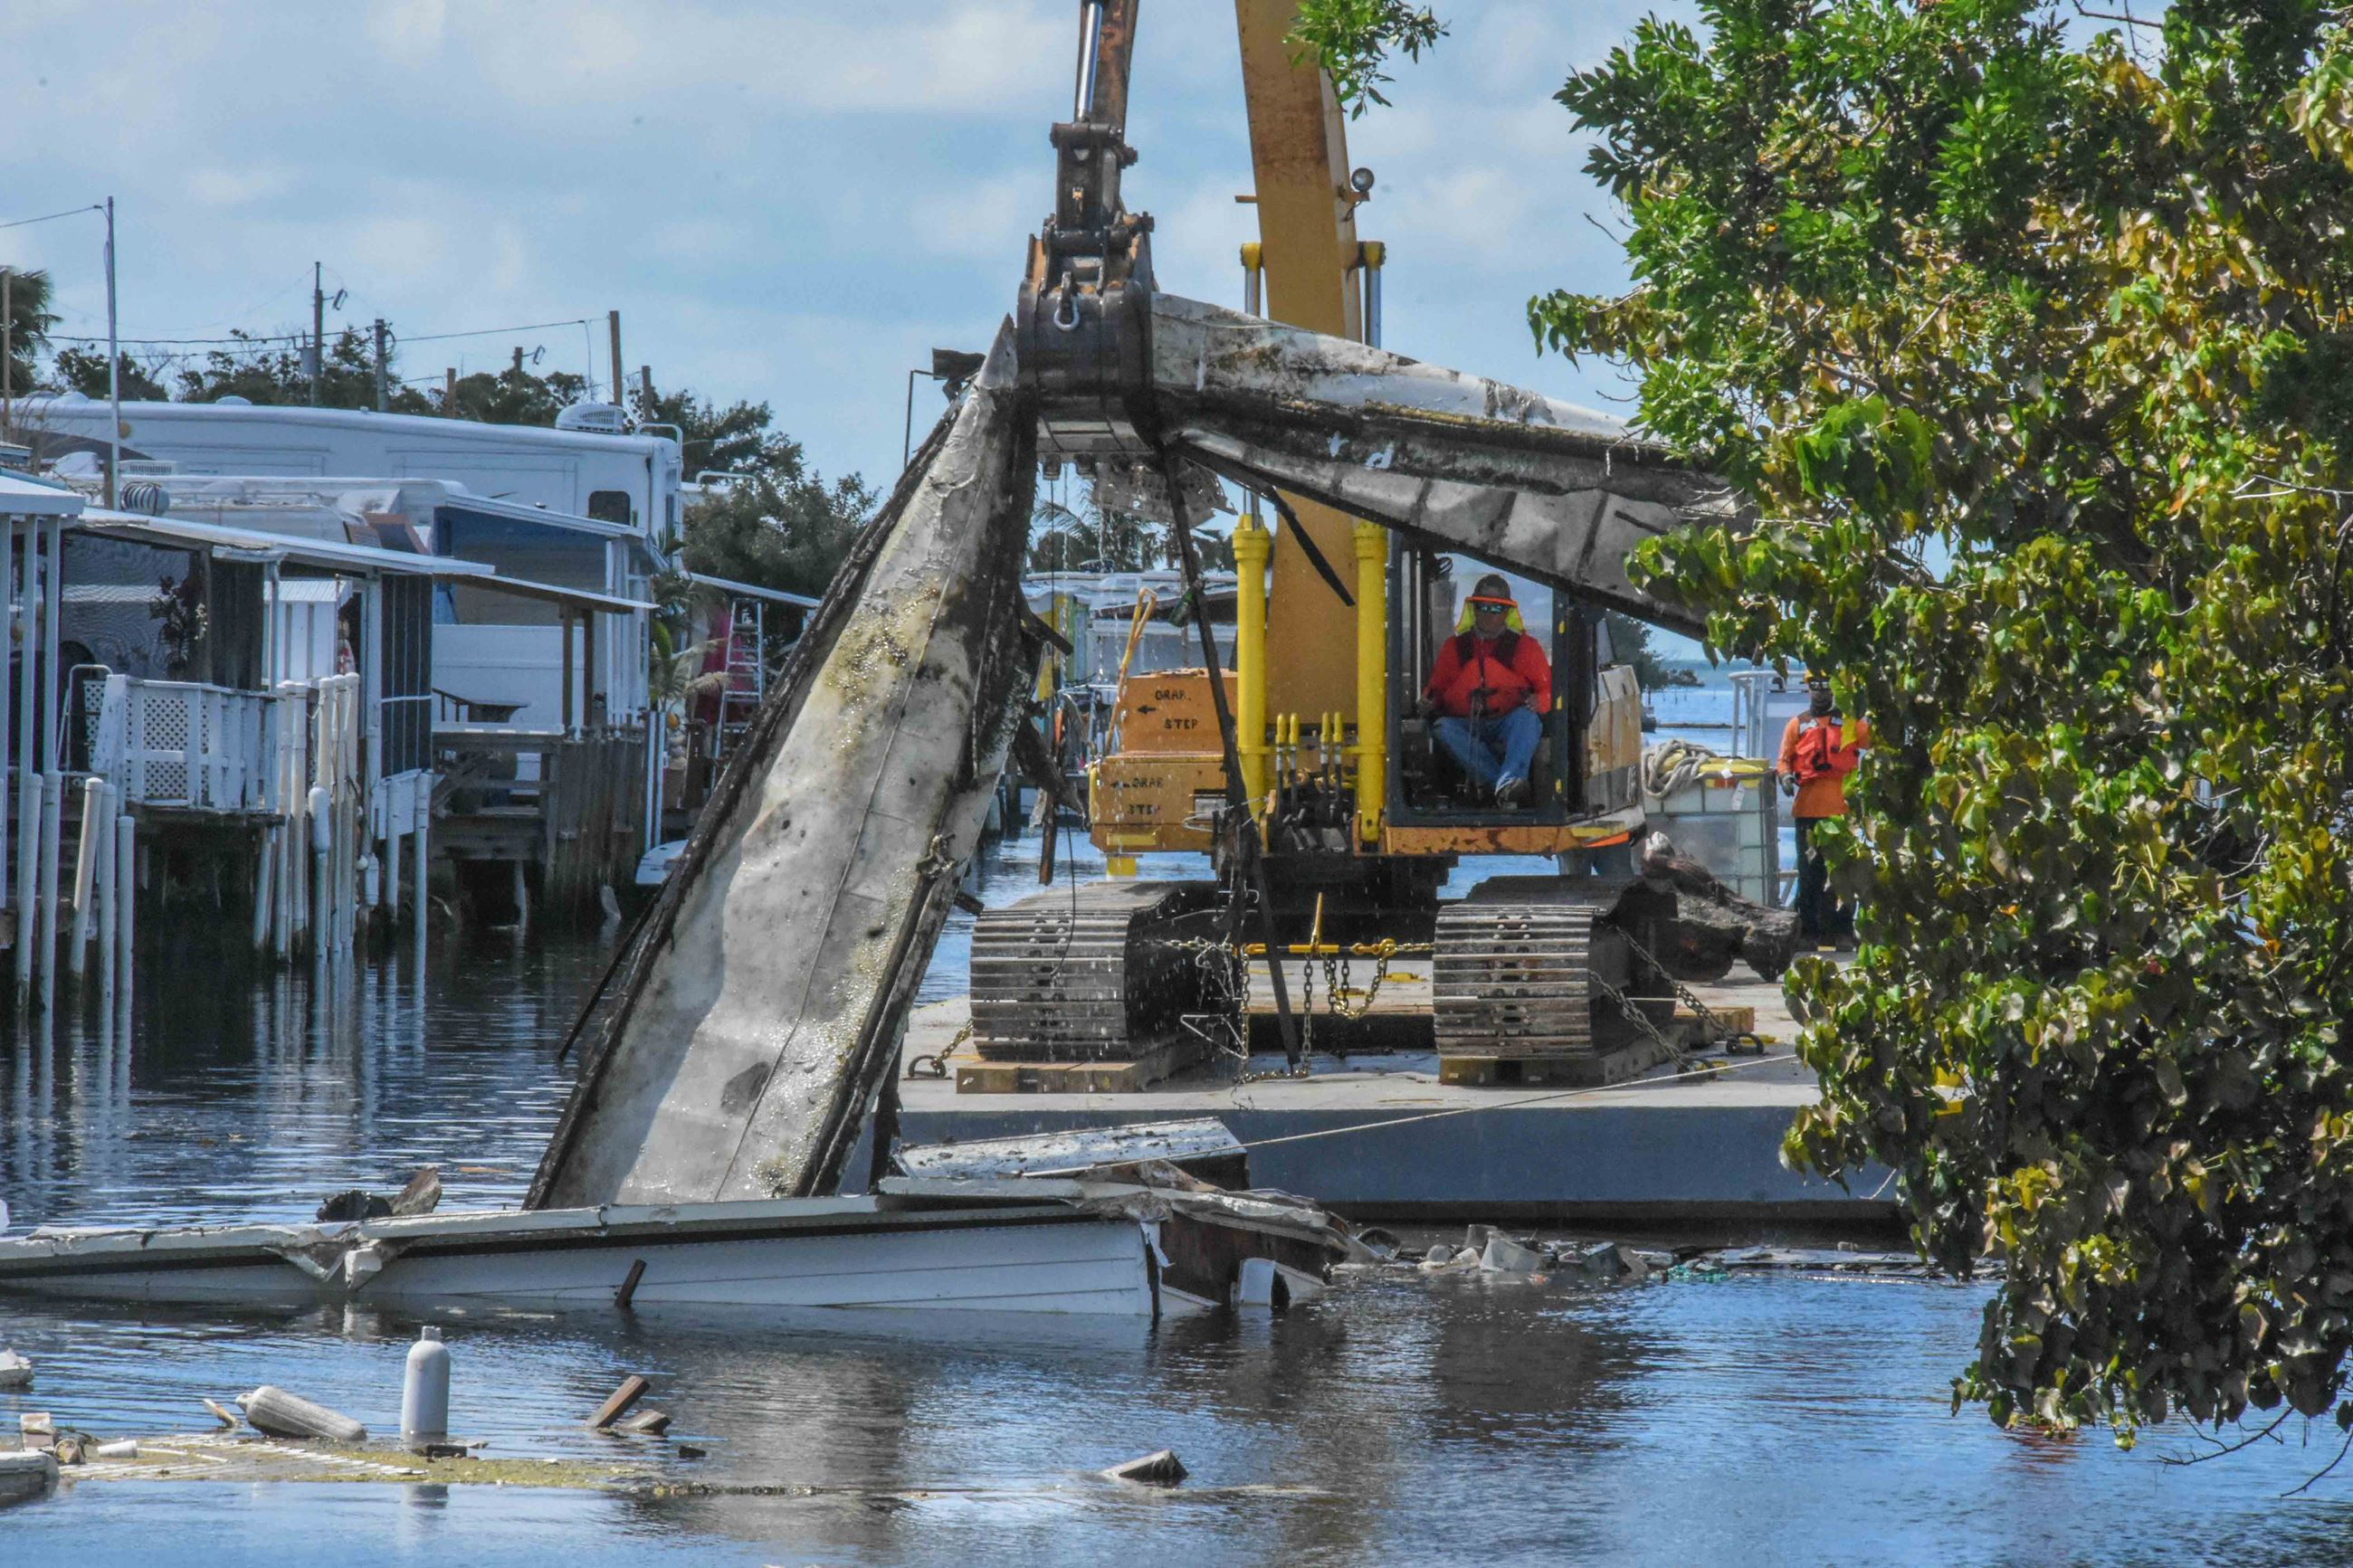 NRCS Funded Marine Debris Removal Project LR-3